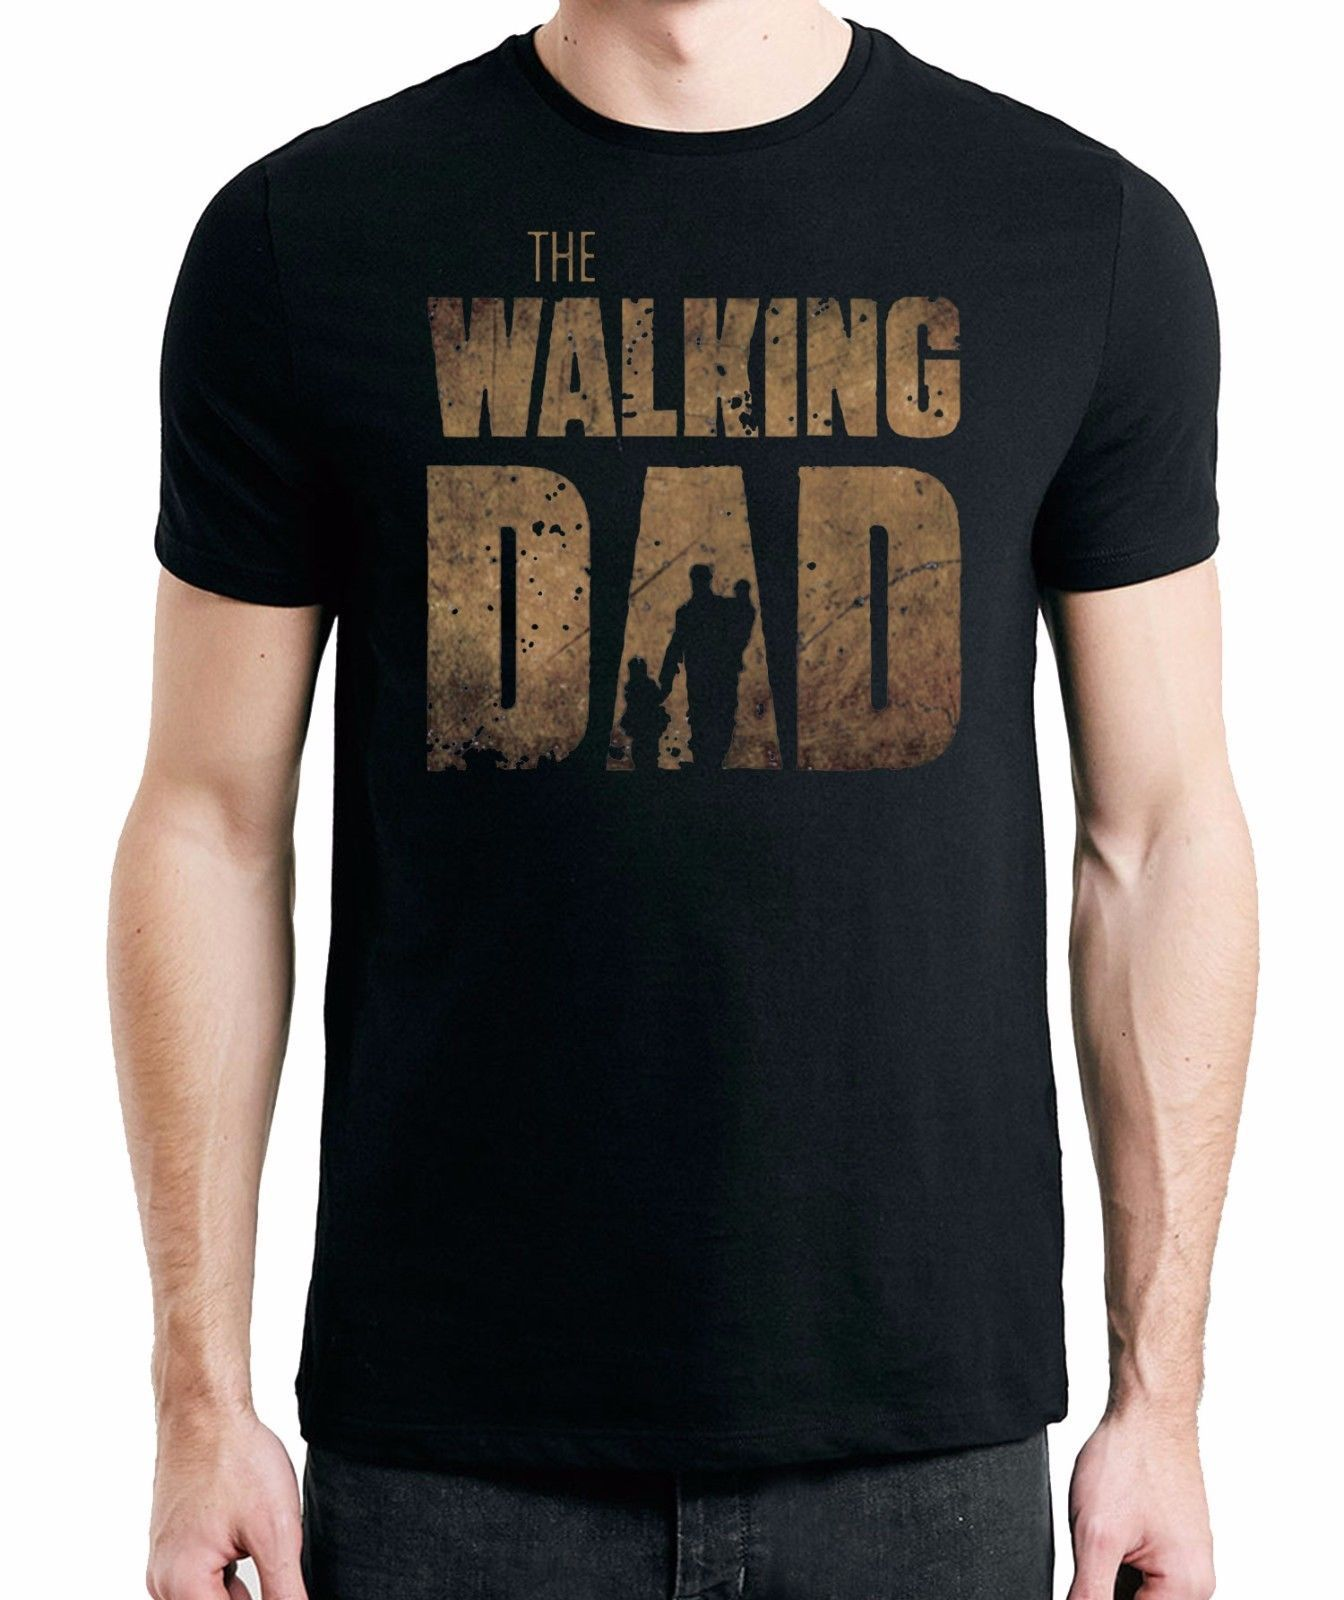 The Walking Dad T Shirt Fathers Day Birthday Present Men S Funny T Shirt Ebay The Walking Dad Funny Dad Shirts Cheer Dad Shirts